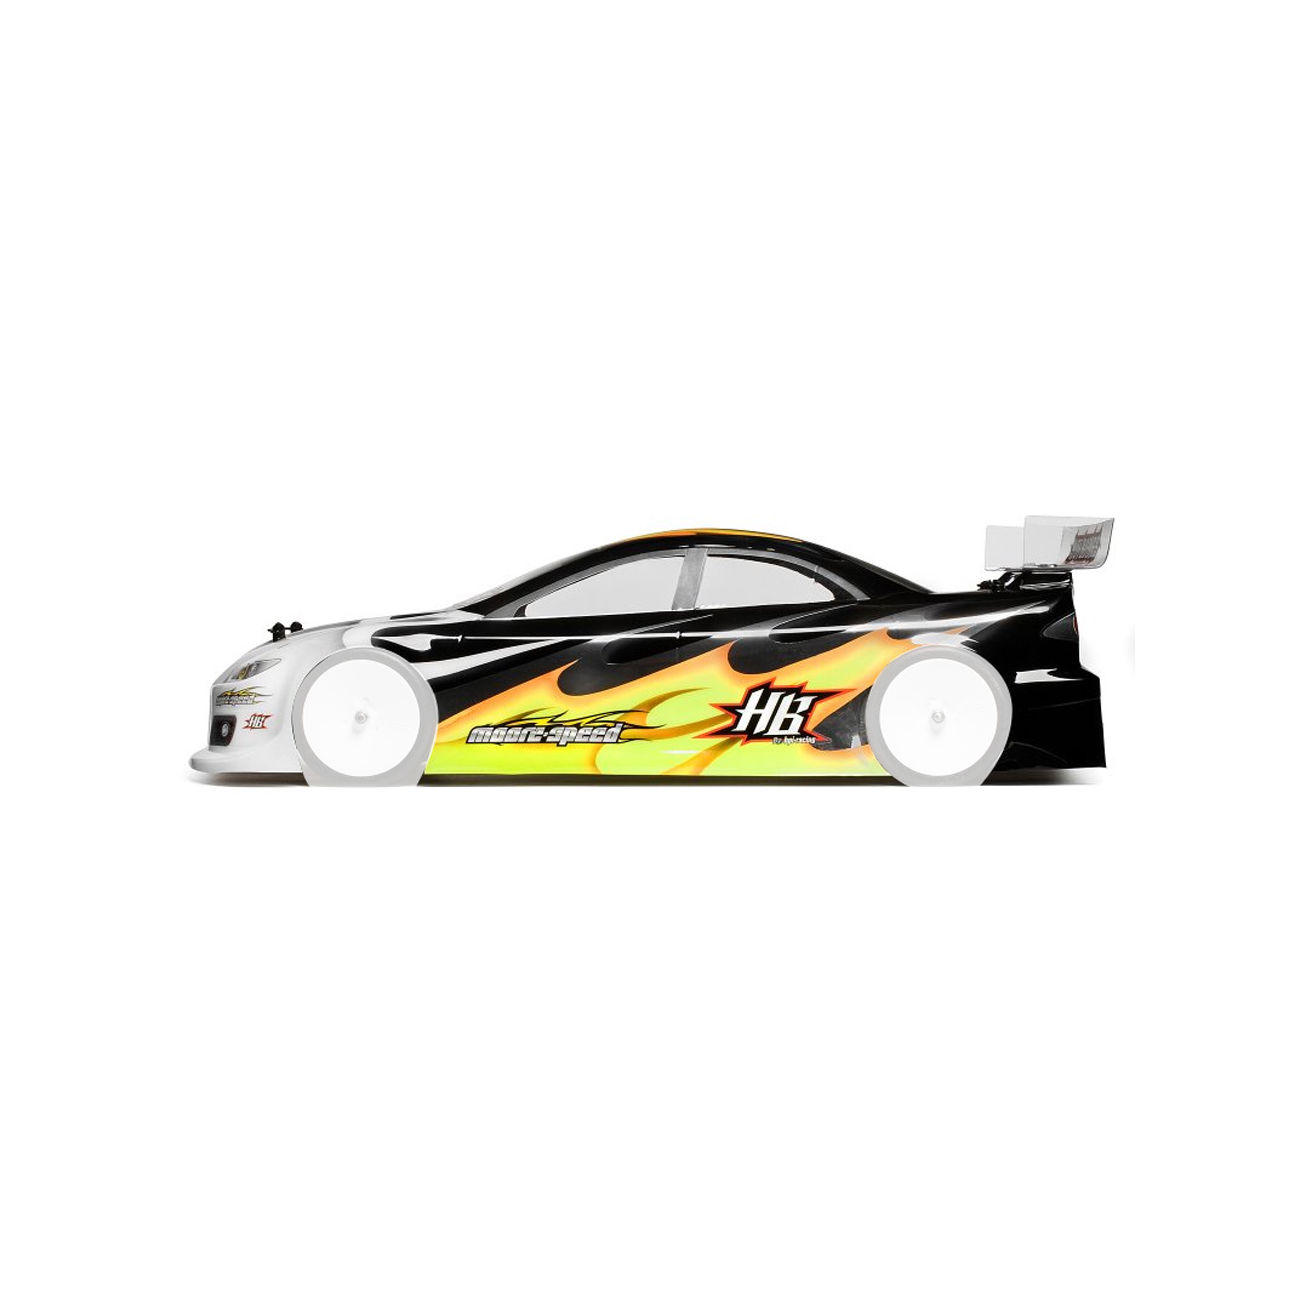 Hot Bodies 1:10 Lexan Karosserie Moore-Speed Mazda 6 MPS 190mm HB66813 1